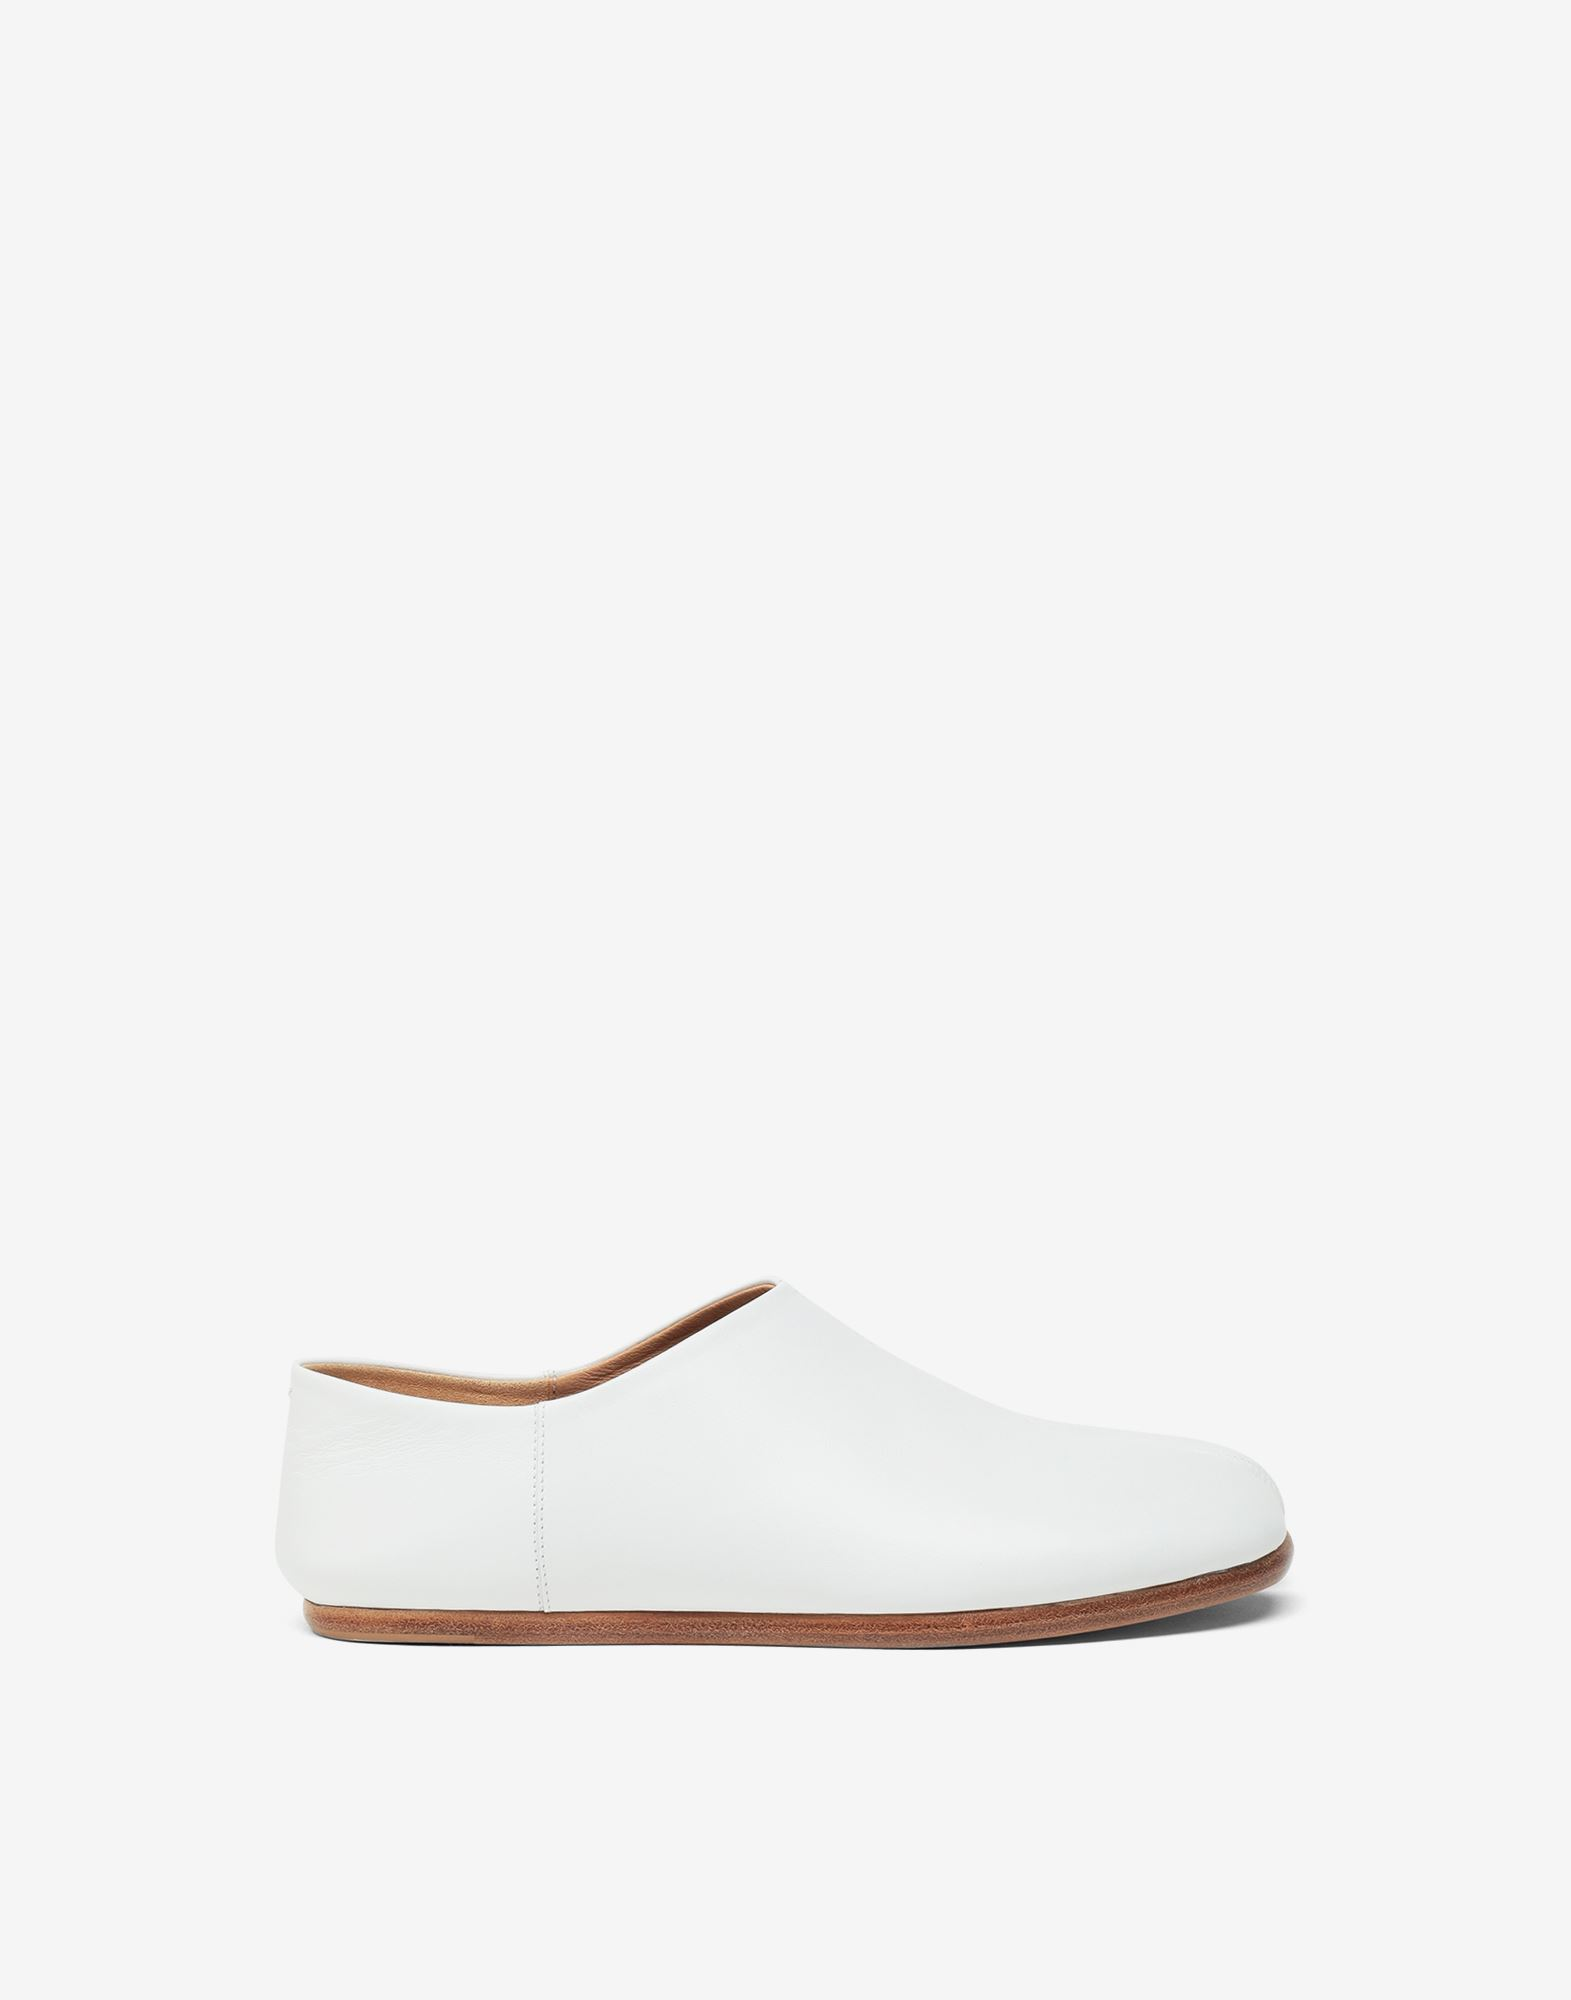 MAISON MARGIELA Tabi leather slip-ons Moccasins Woman f